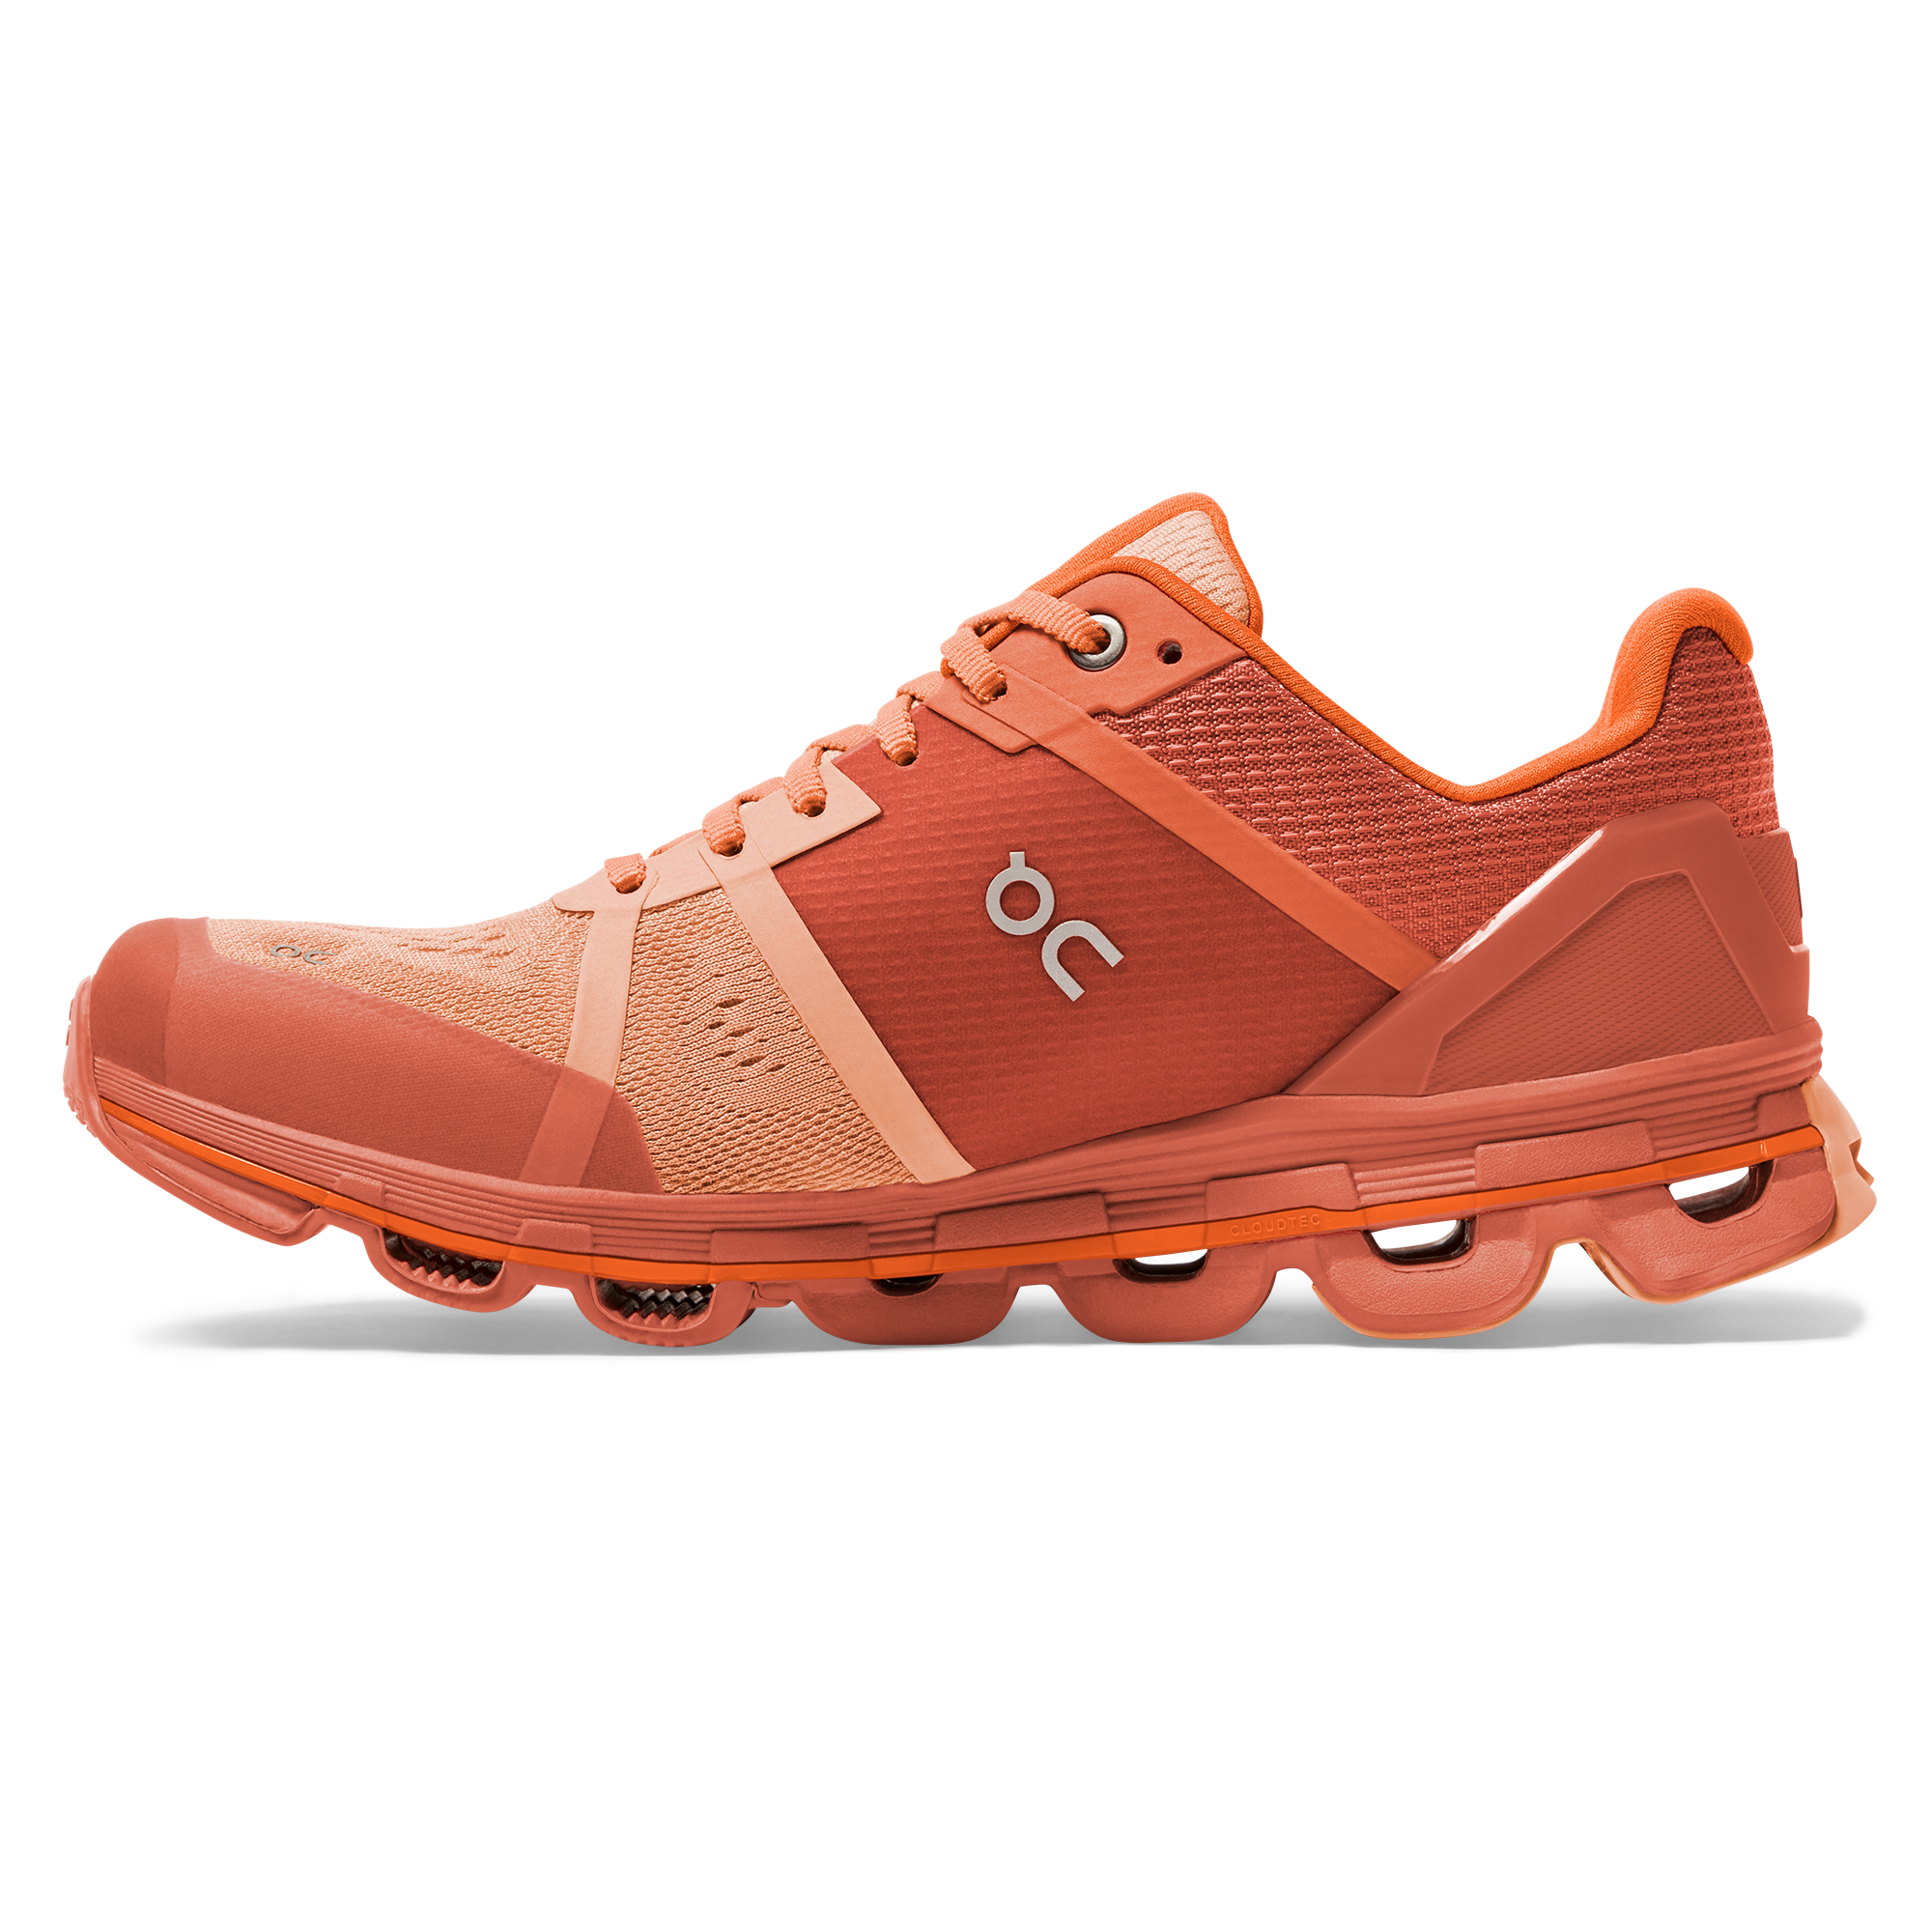 Cloudace - Support Running Shoe | On